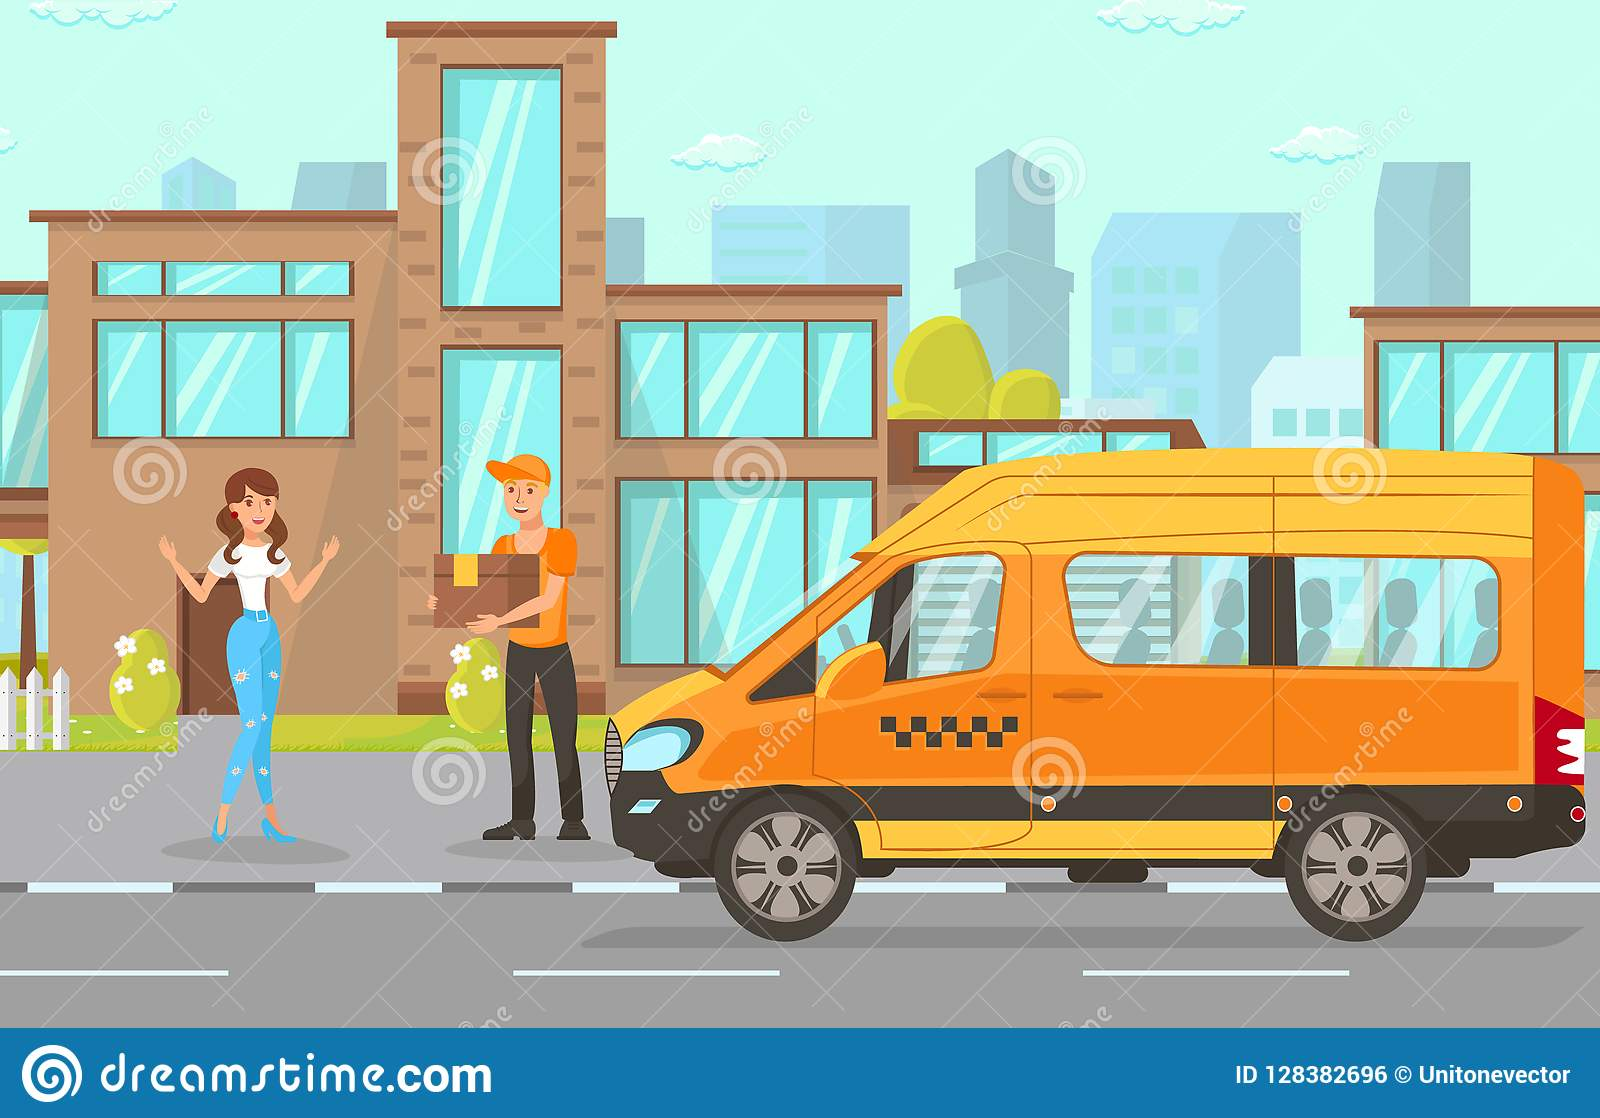 courier company looking for drivers